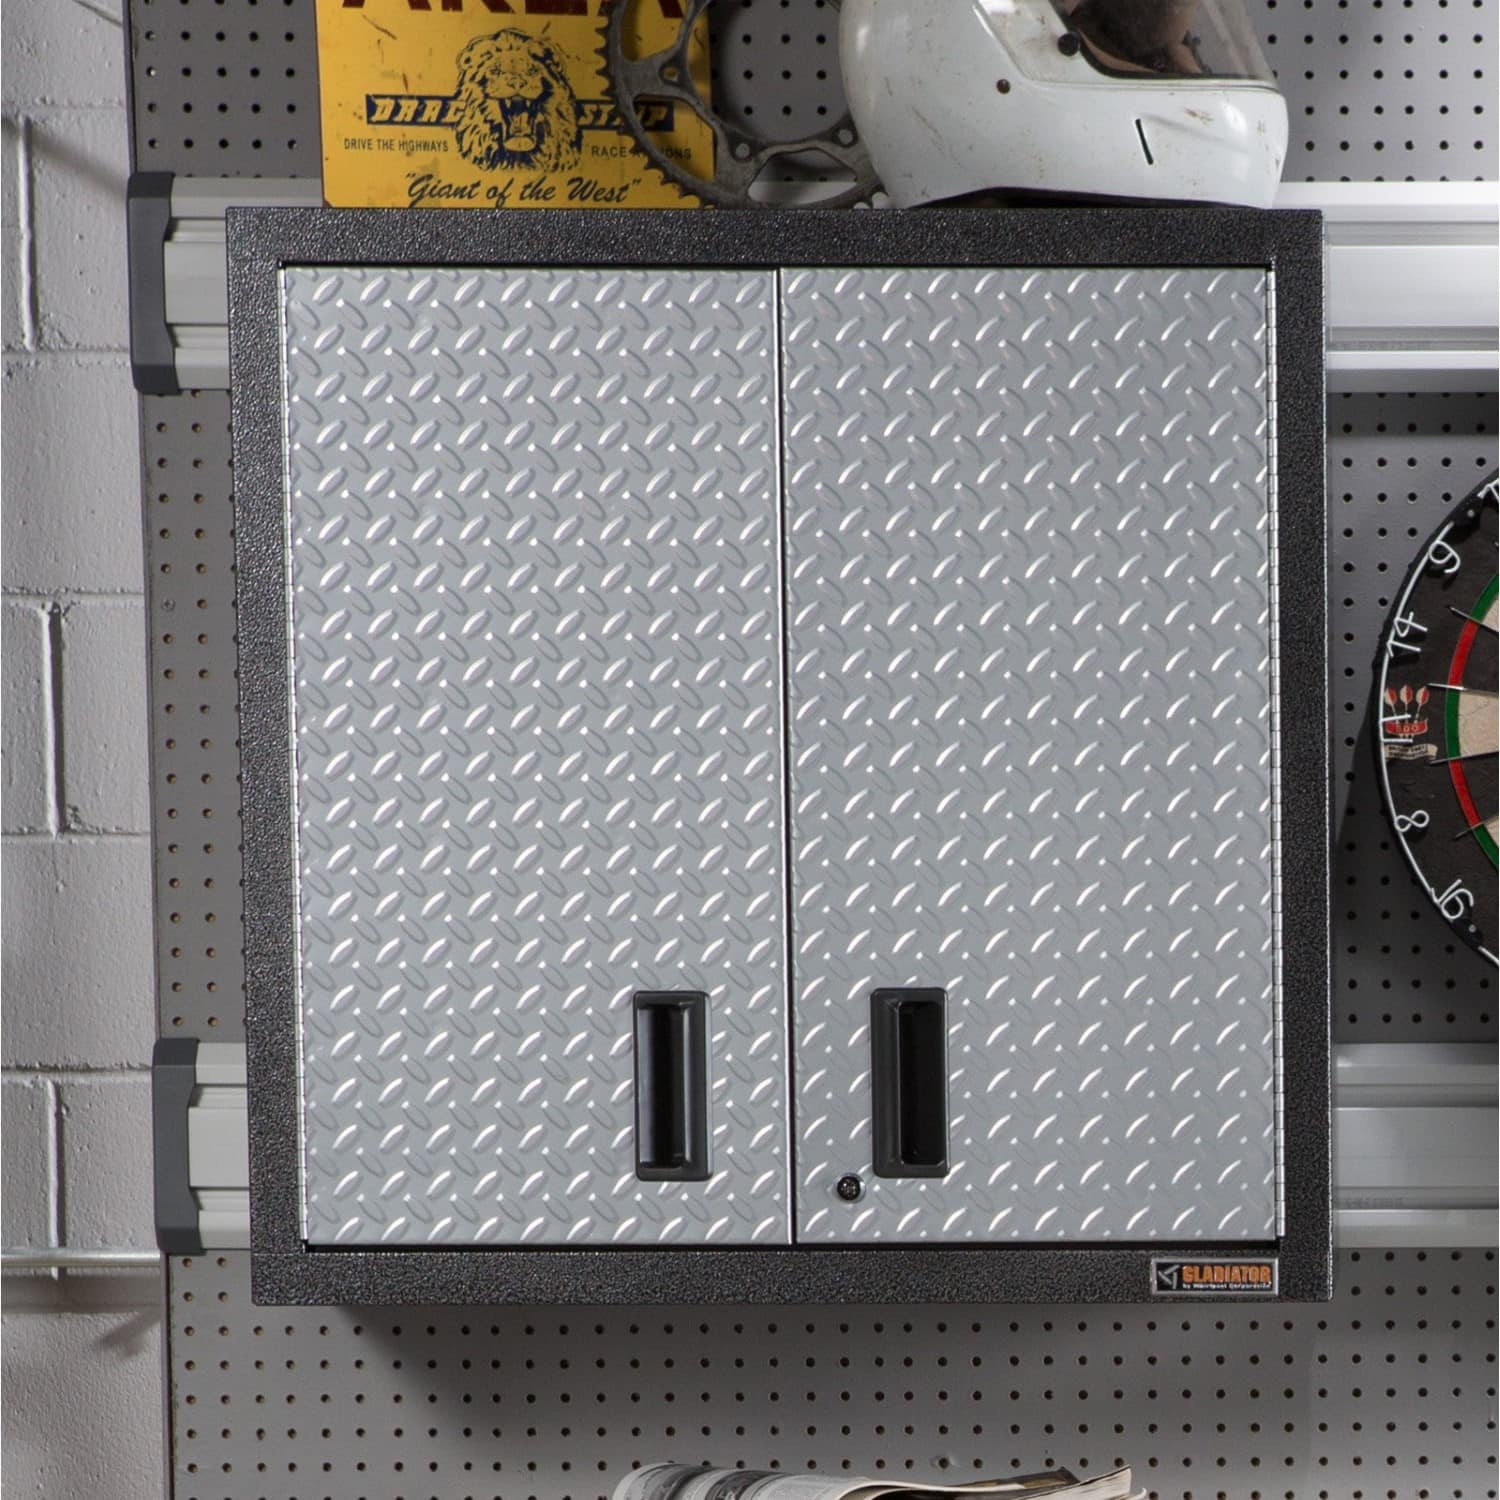 """Gladiator Premier Series 30"""" Garage Wall Cabinet $100 at Jet.com (+ extra 15% off for new customers)"""